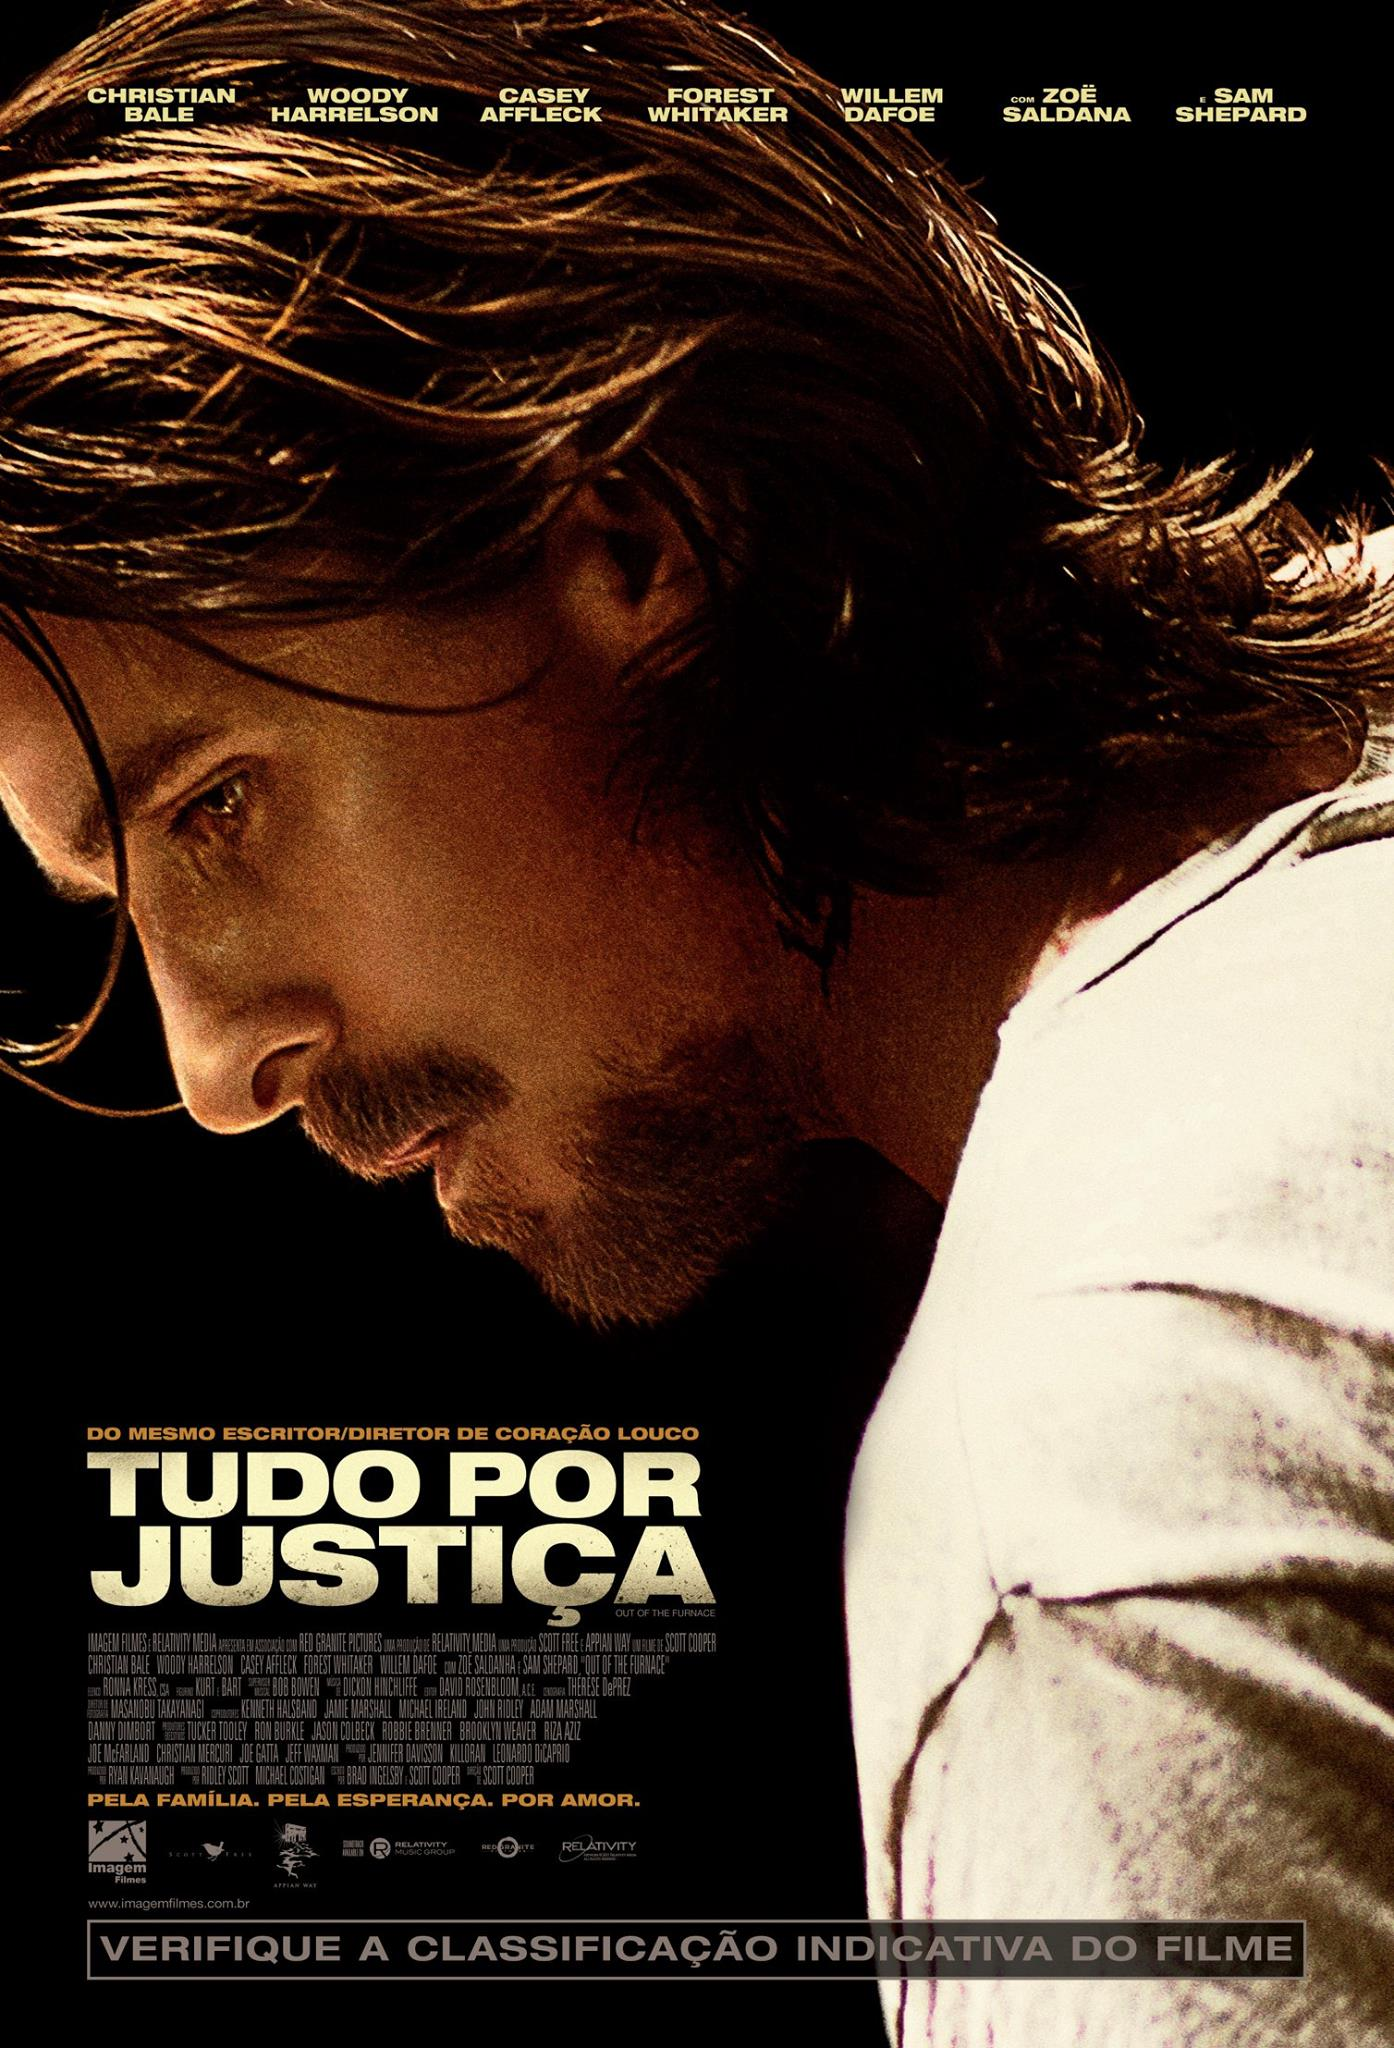 Out Of The Furnace-Official Poster Banner PROMO PHOTOS-25SETEMBRO2013-08